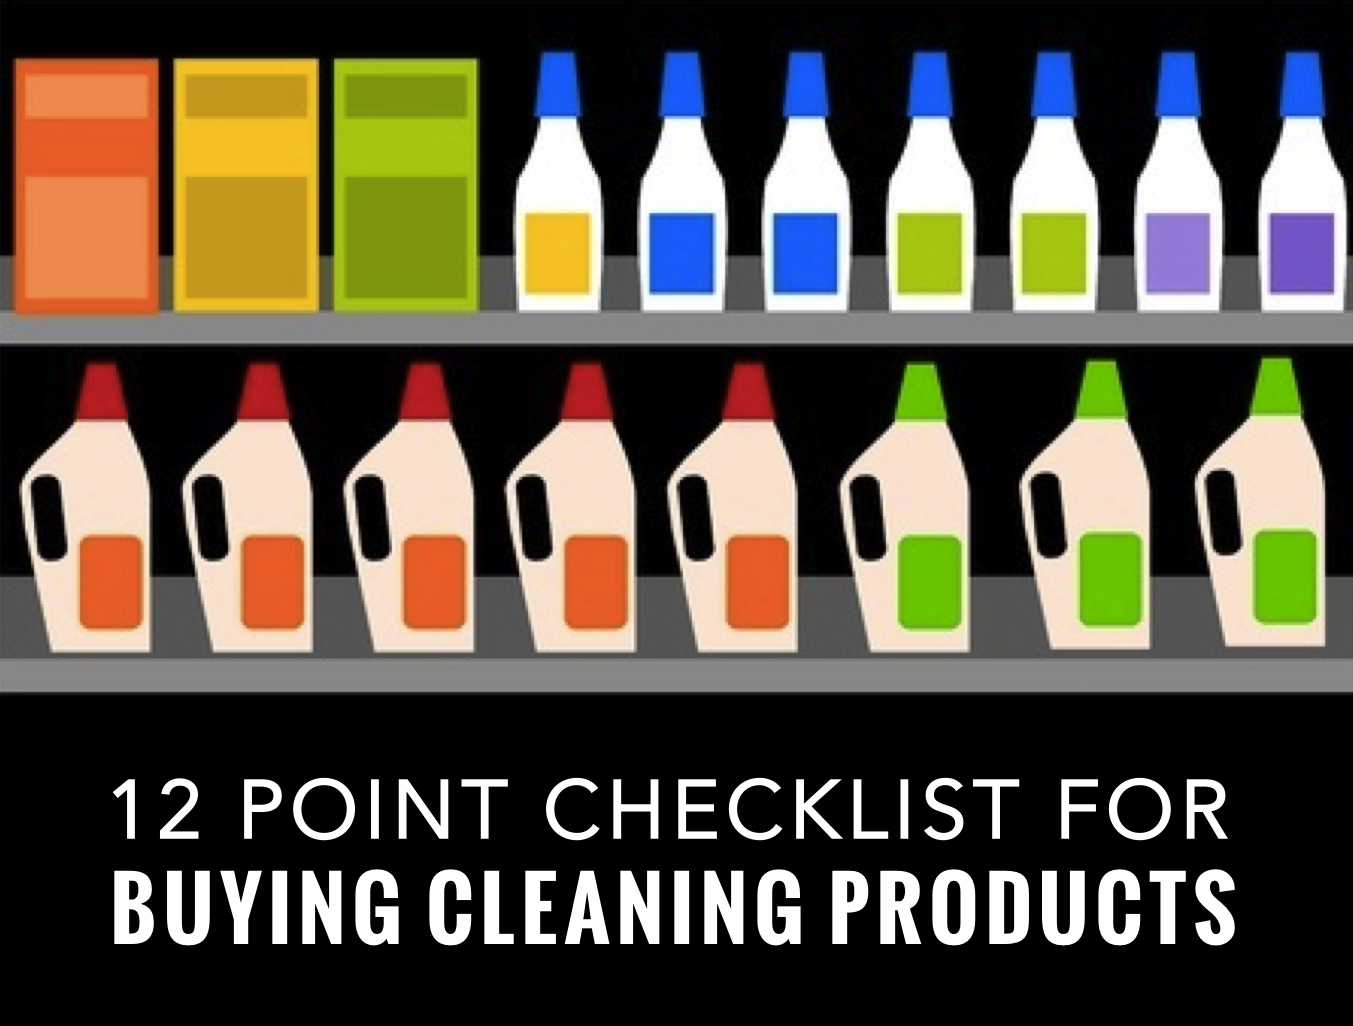 EcoDiscoveries_Checklist_Cleaning_Products